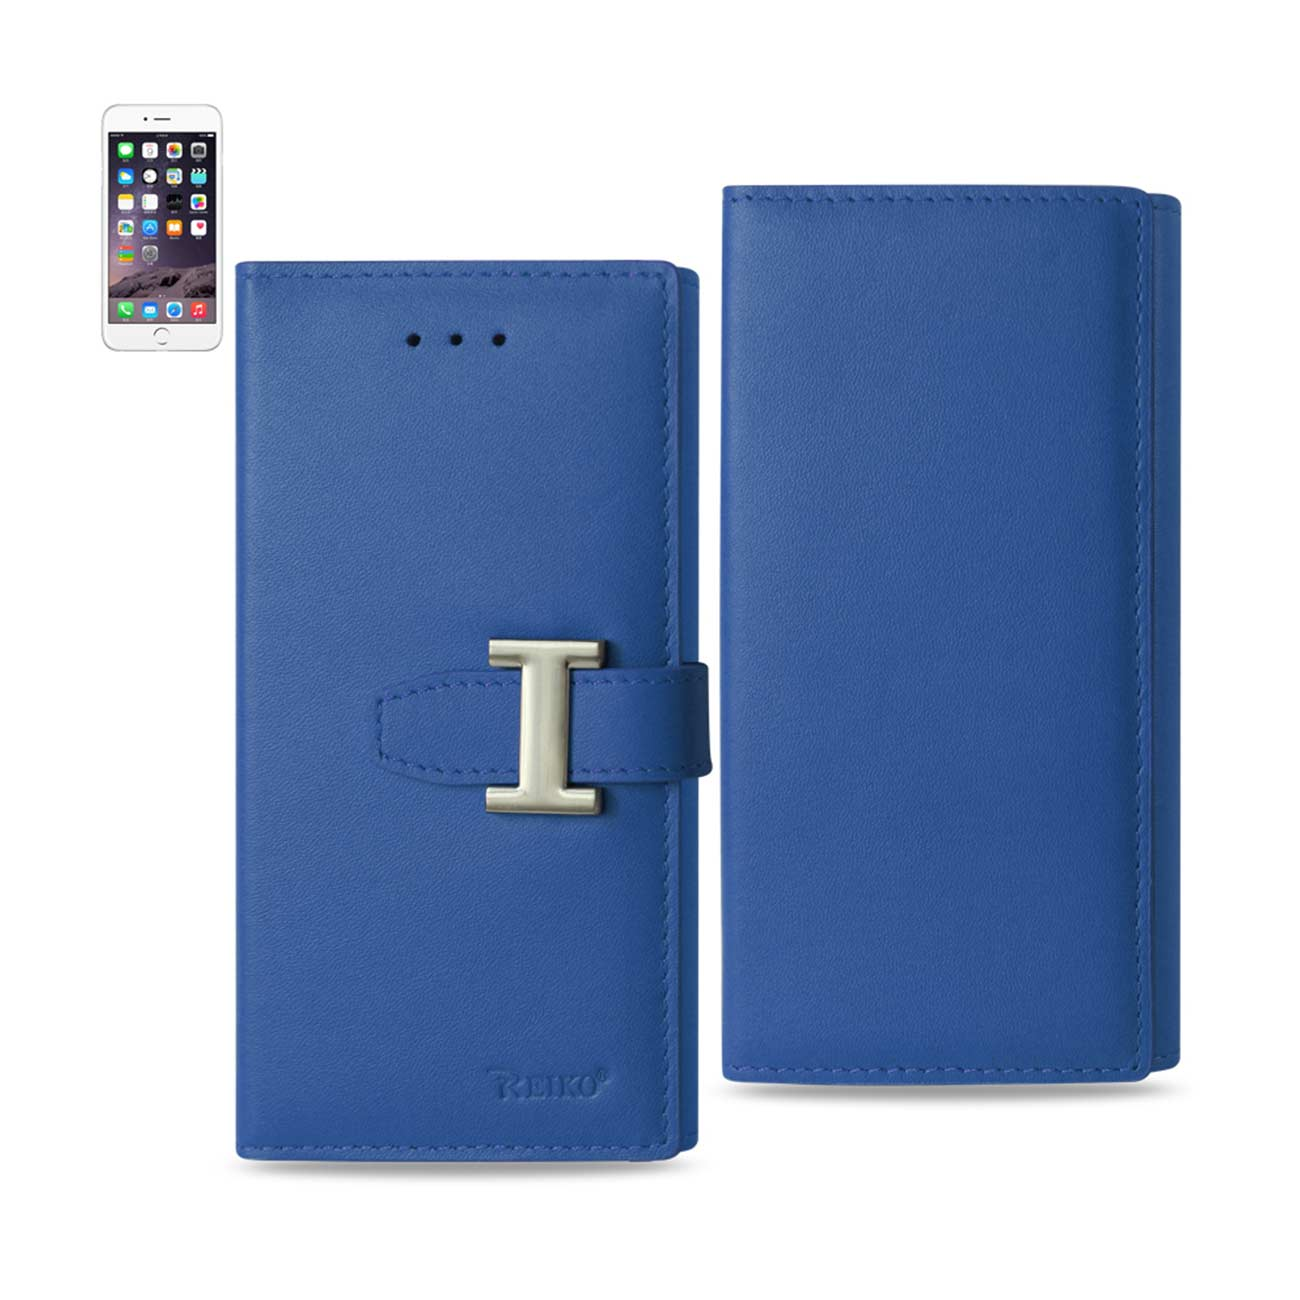 IPHONE 6 GENUINE LEATHER RFID WALLET CASE IN ULTRAMARINE